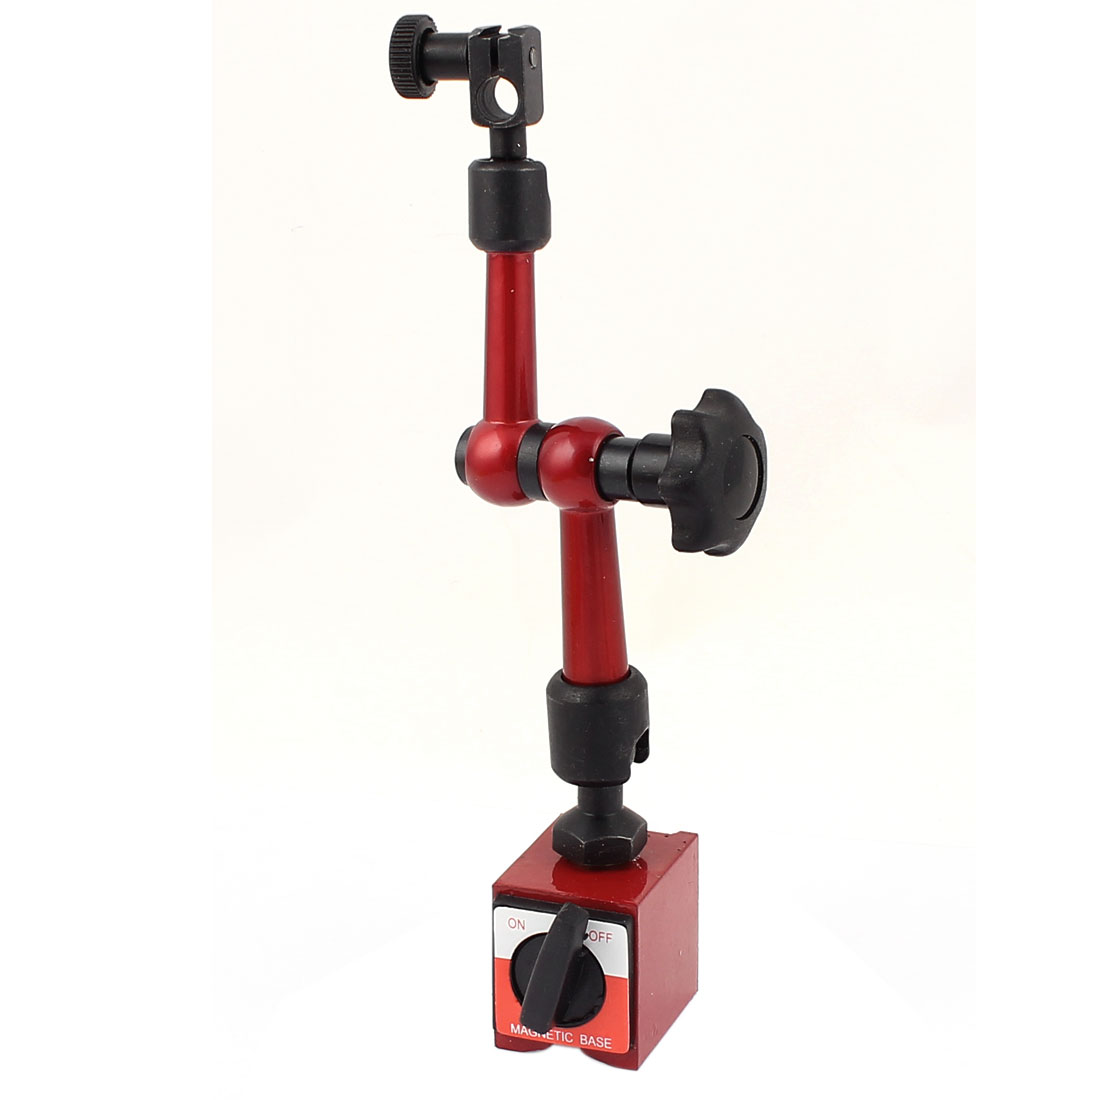 Black Red Magnetic Switch Bass Holder Stand for Dial Test Gauge Indicator